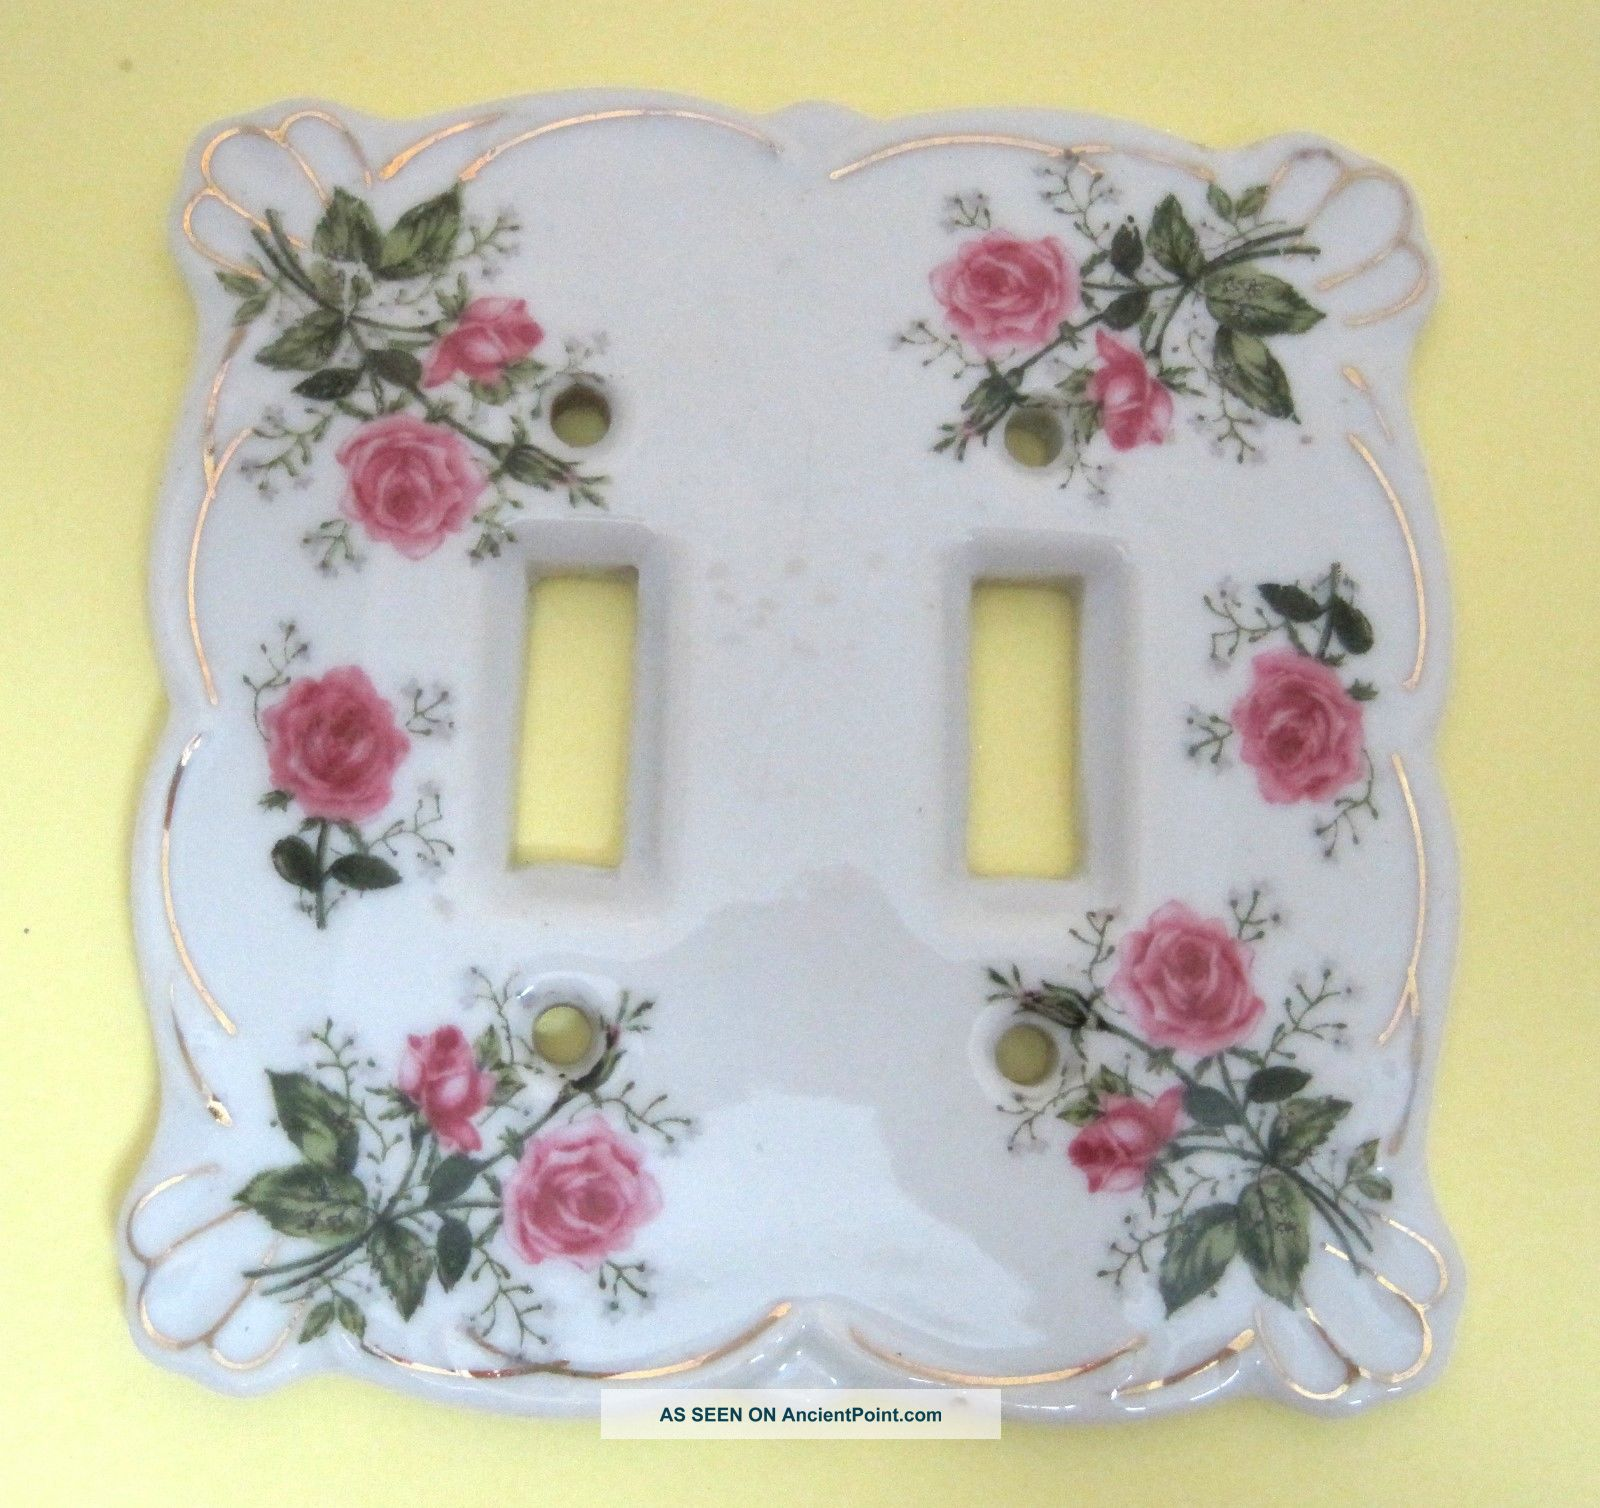 Vintage Lefton 3007 Pink Rose Double Light Switch Cover Stunning Porcelain T60 Switch Plates & Outlet Covers photo